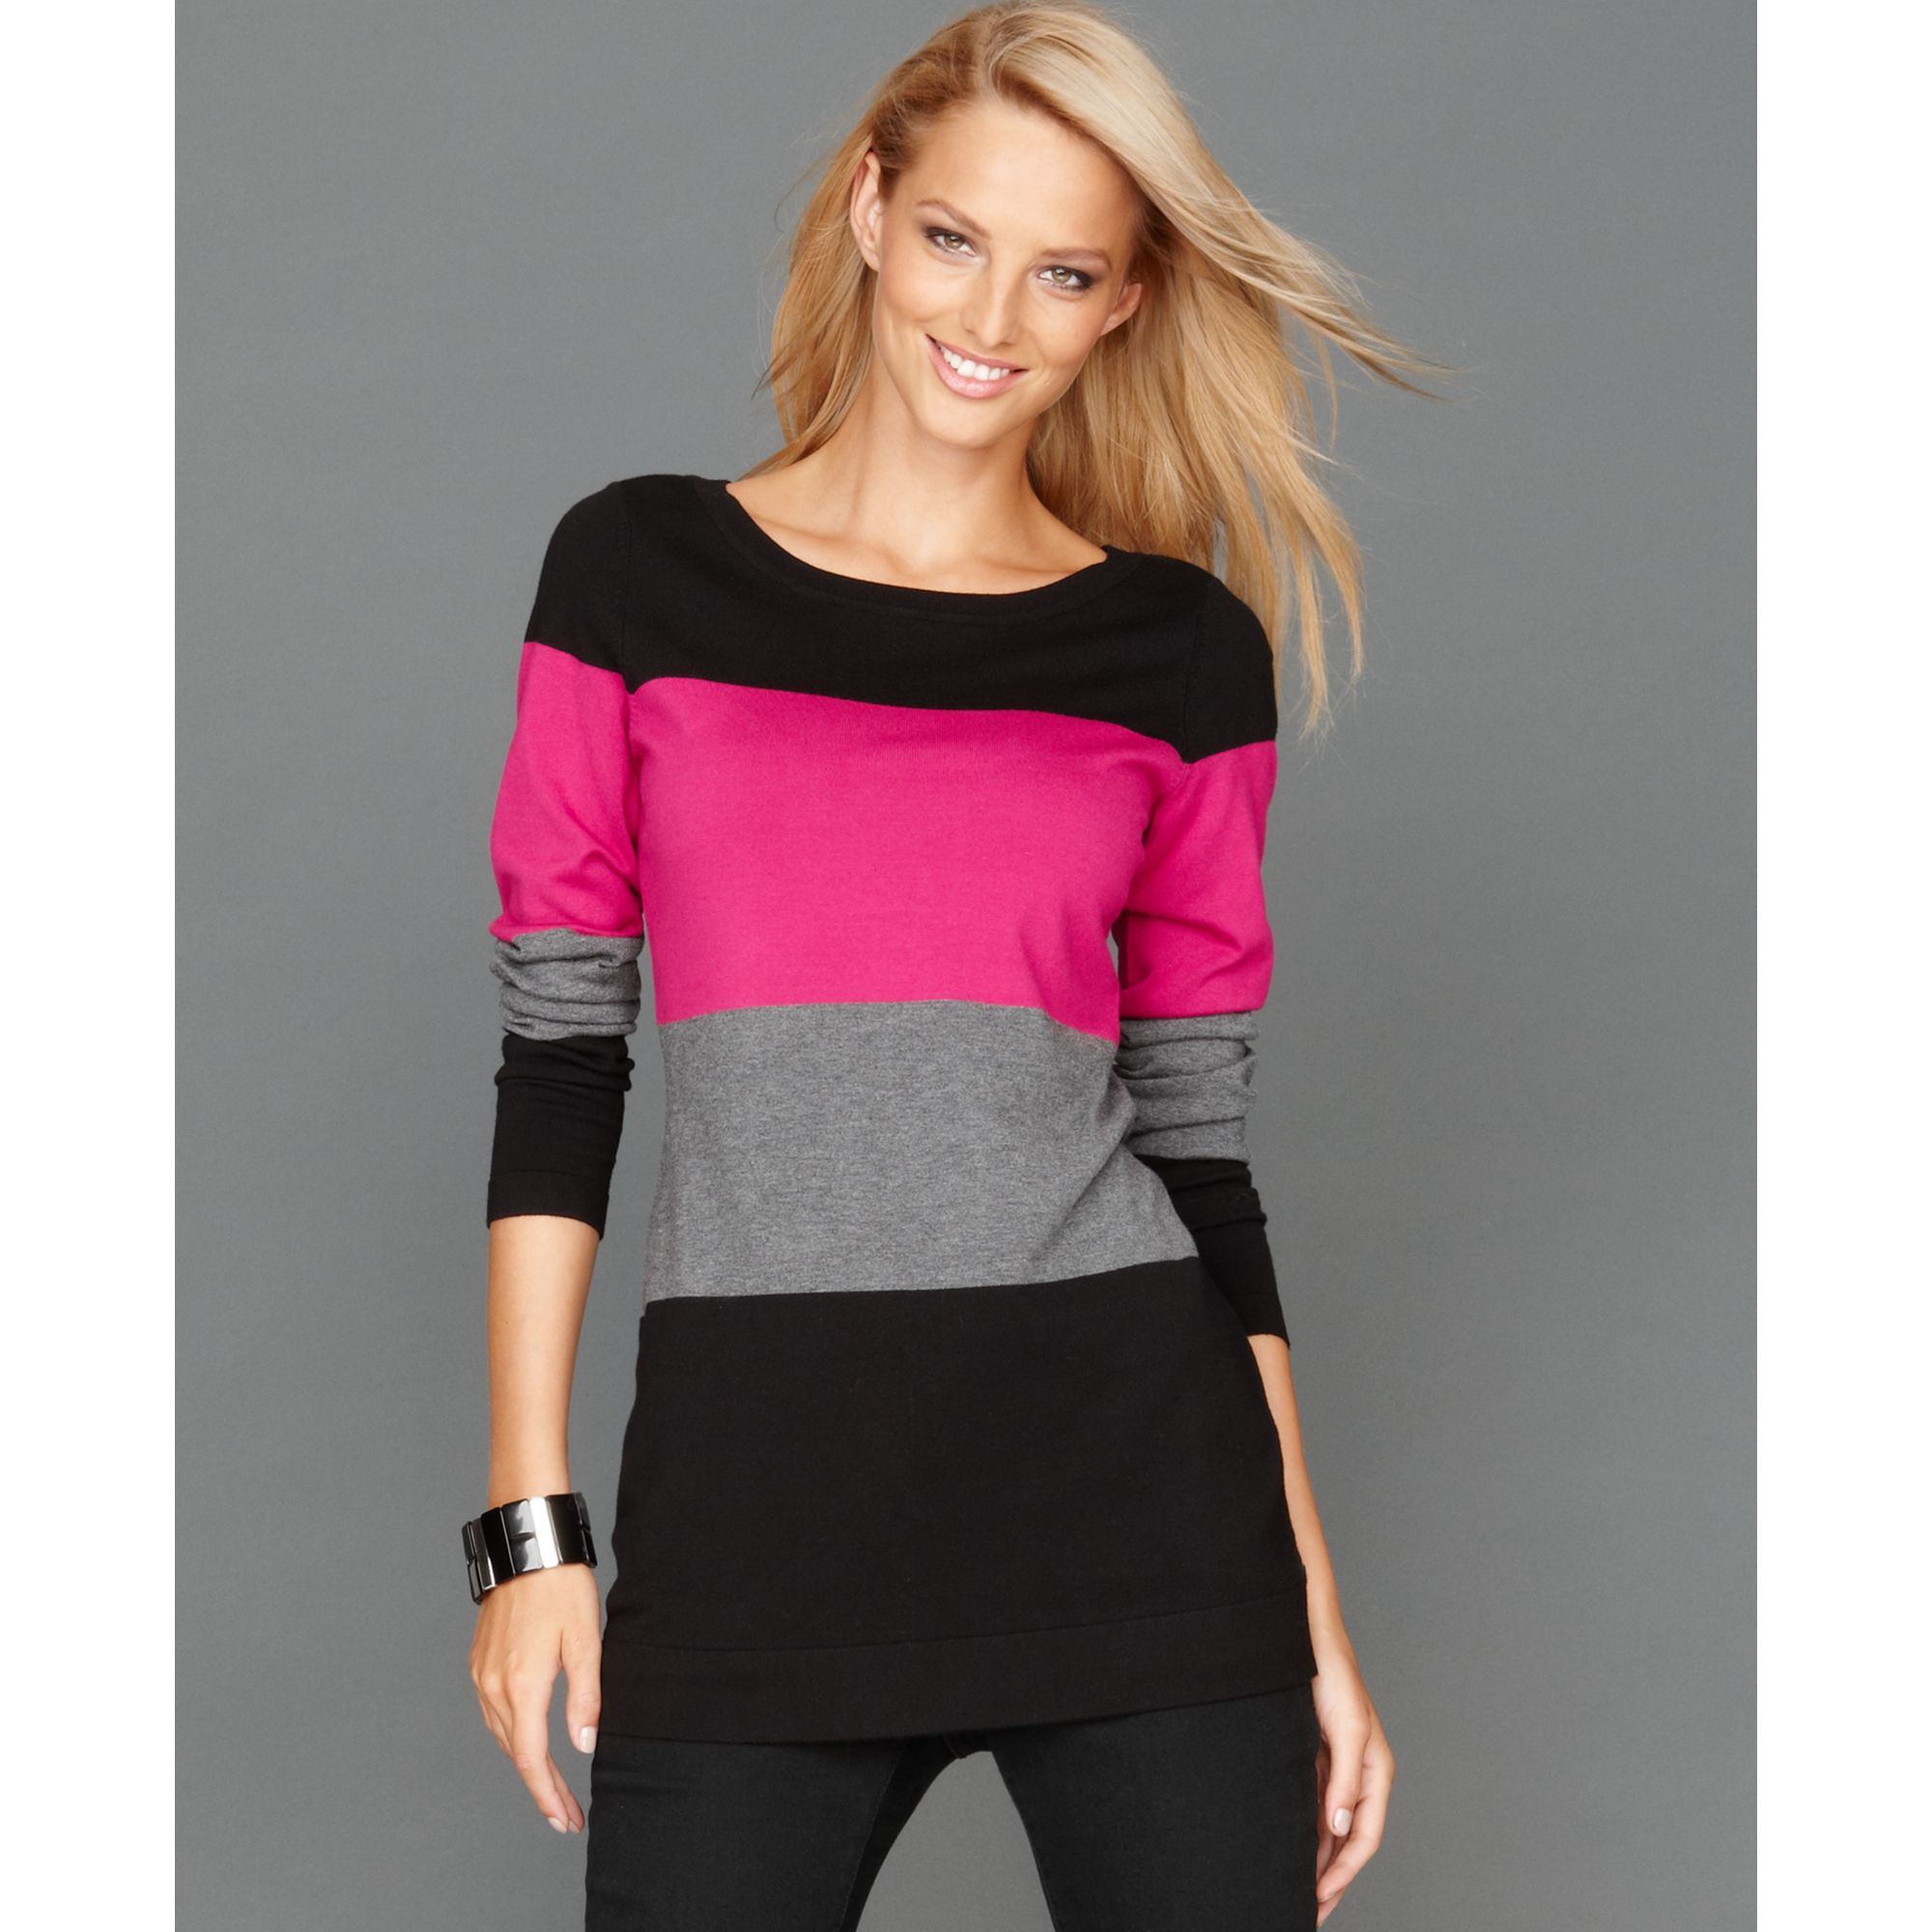 Inc international concepts Longsleeve Colorblock Tunic in Pink | Lyst